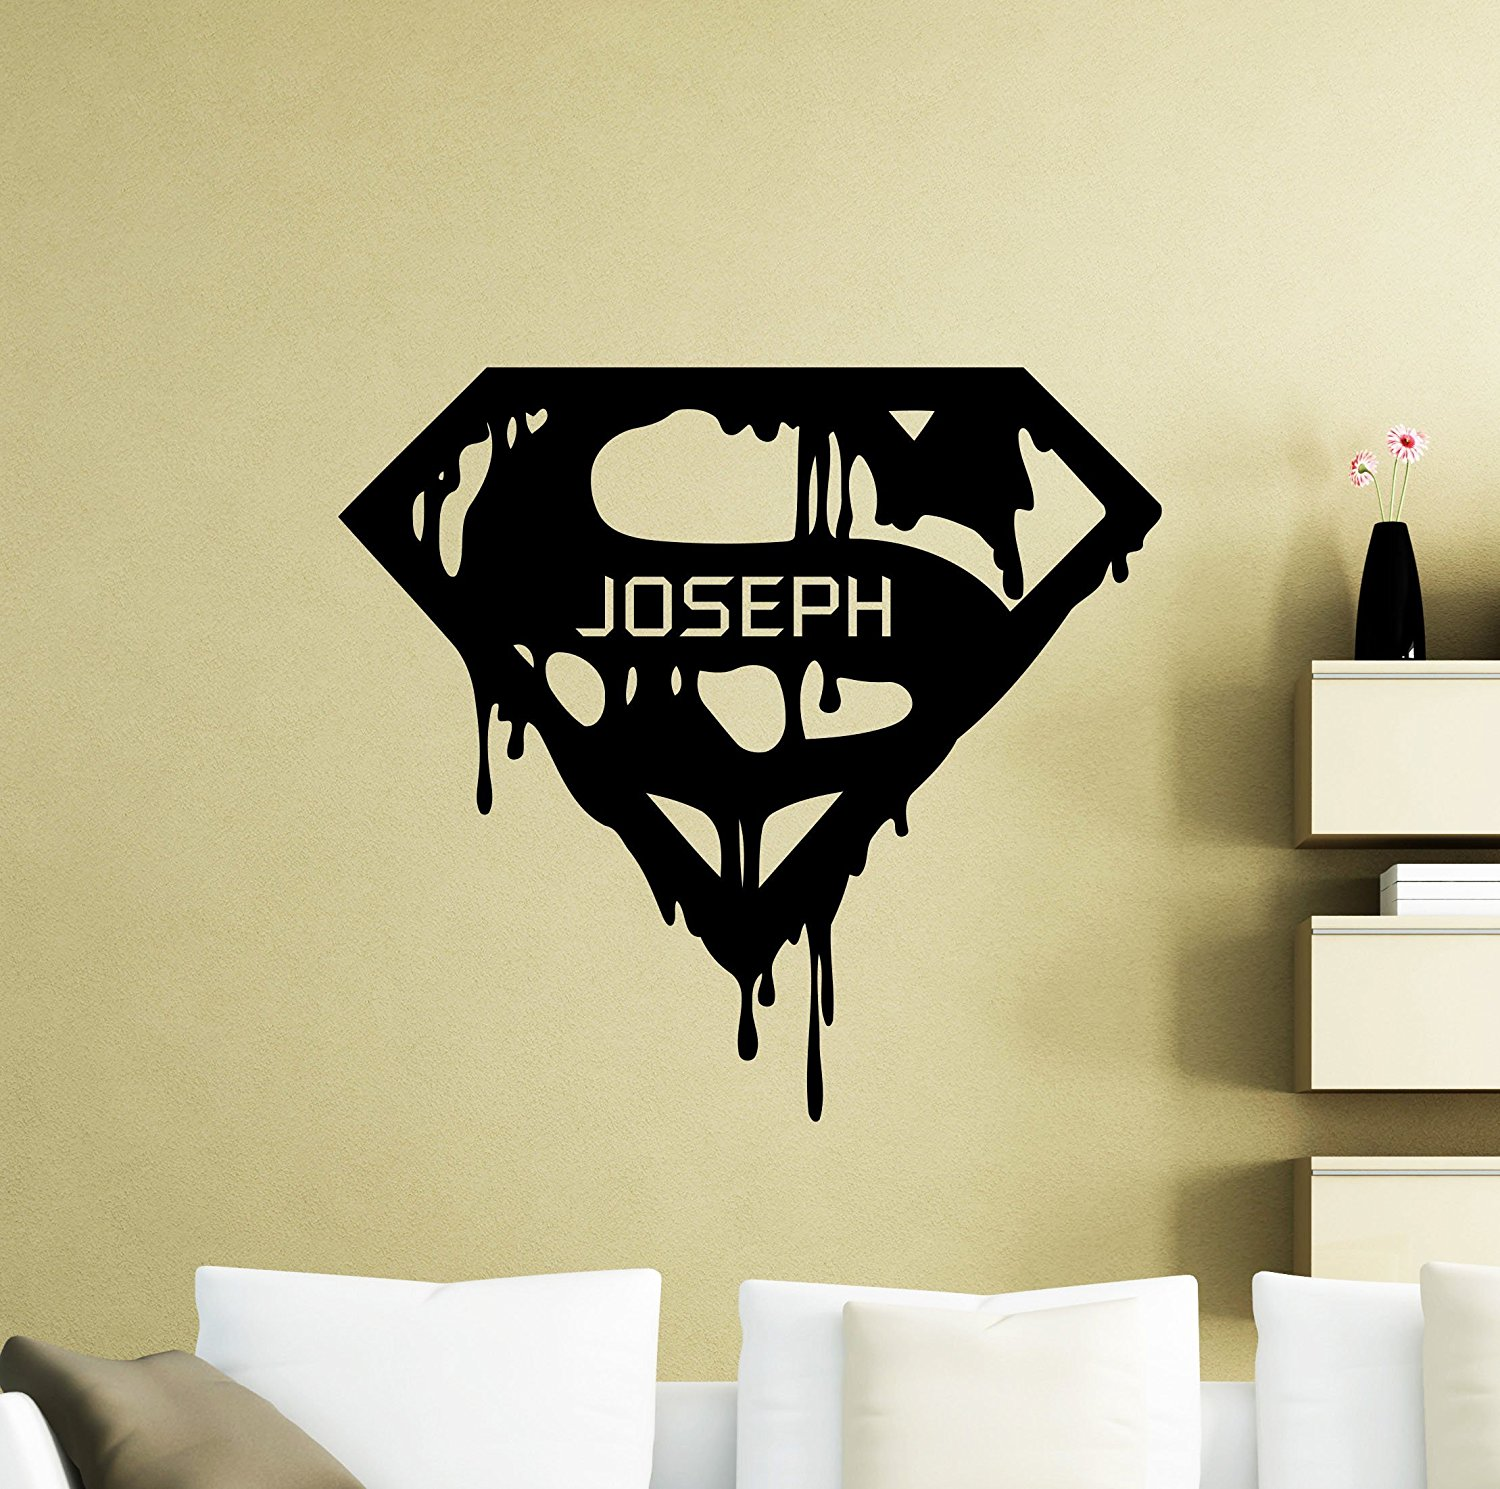 Get quotations · personalized superman wall decal custom name superhero vinyl sticker superman logo home personal nursery room interior